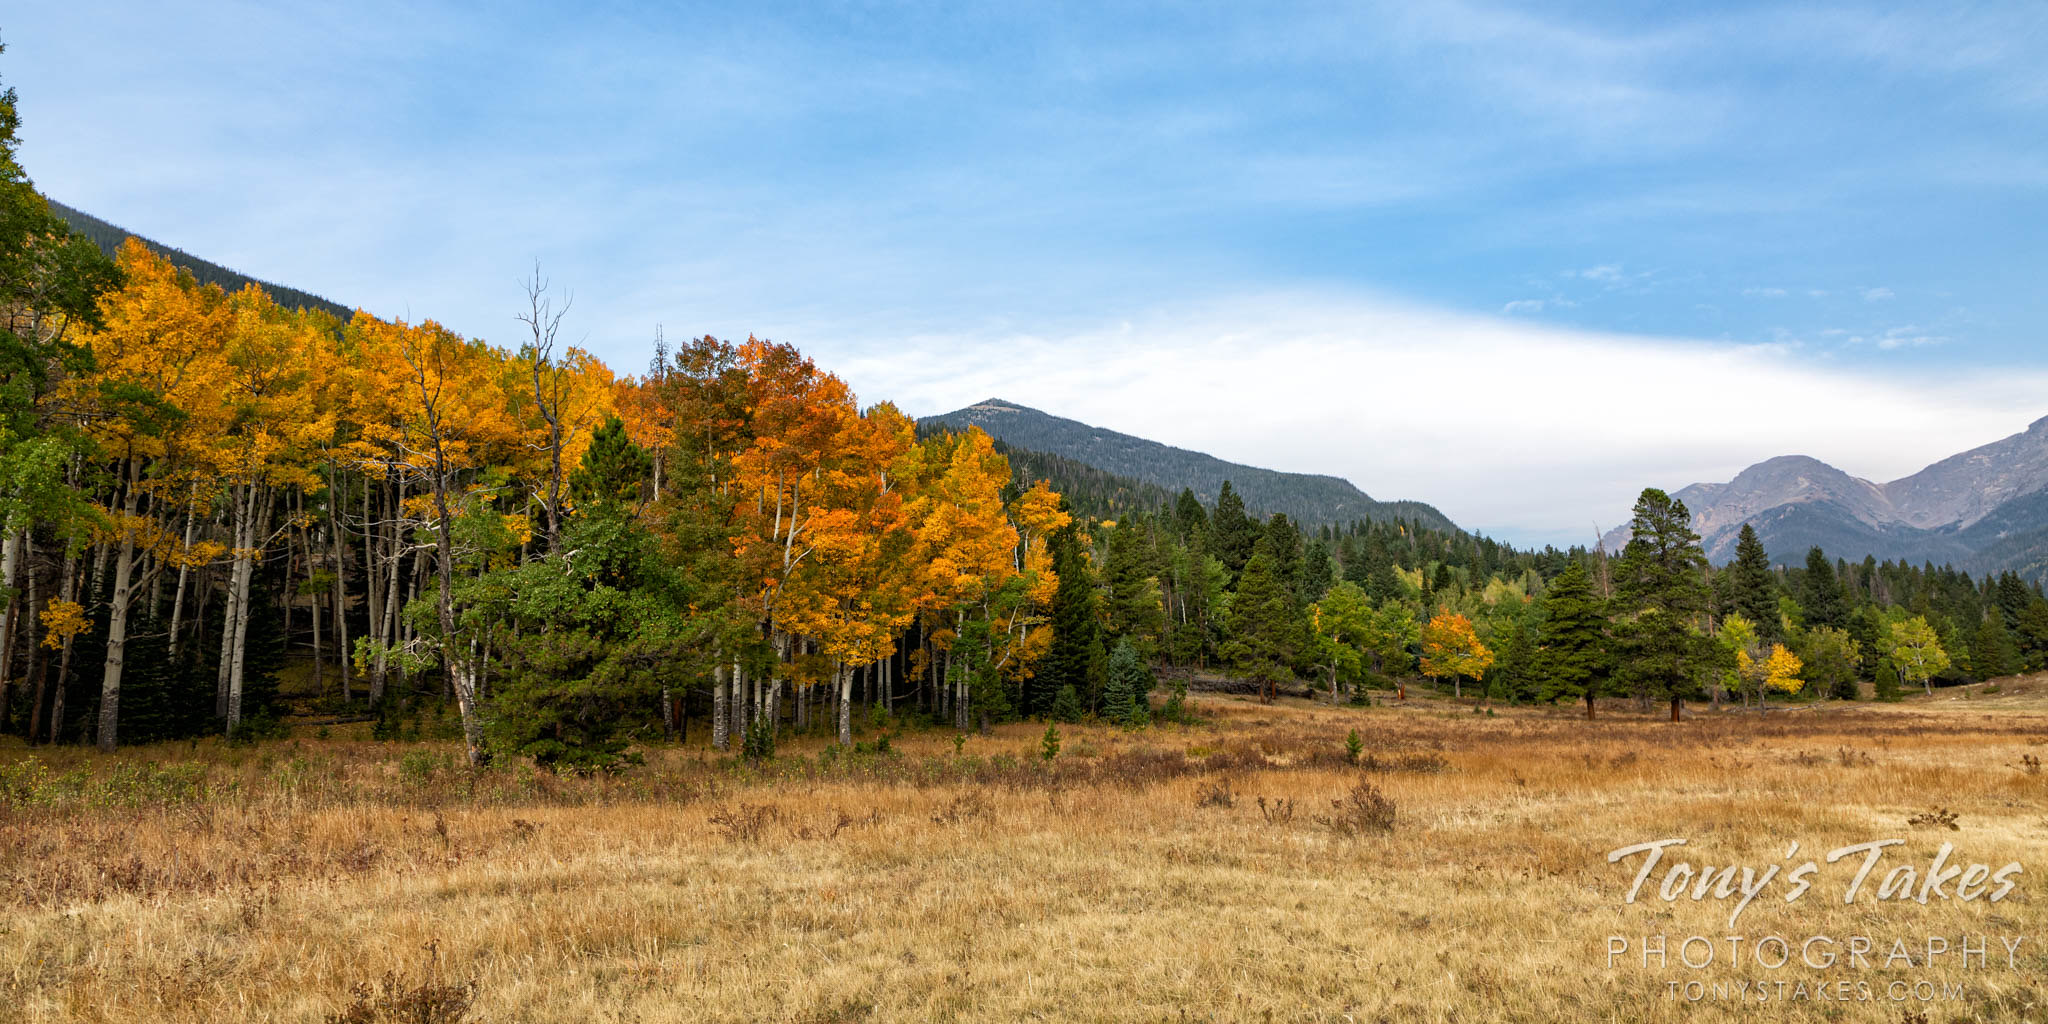 A fall landscape in Rocky Mountain National Park